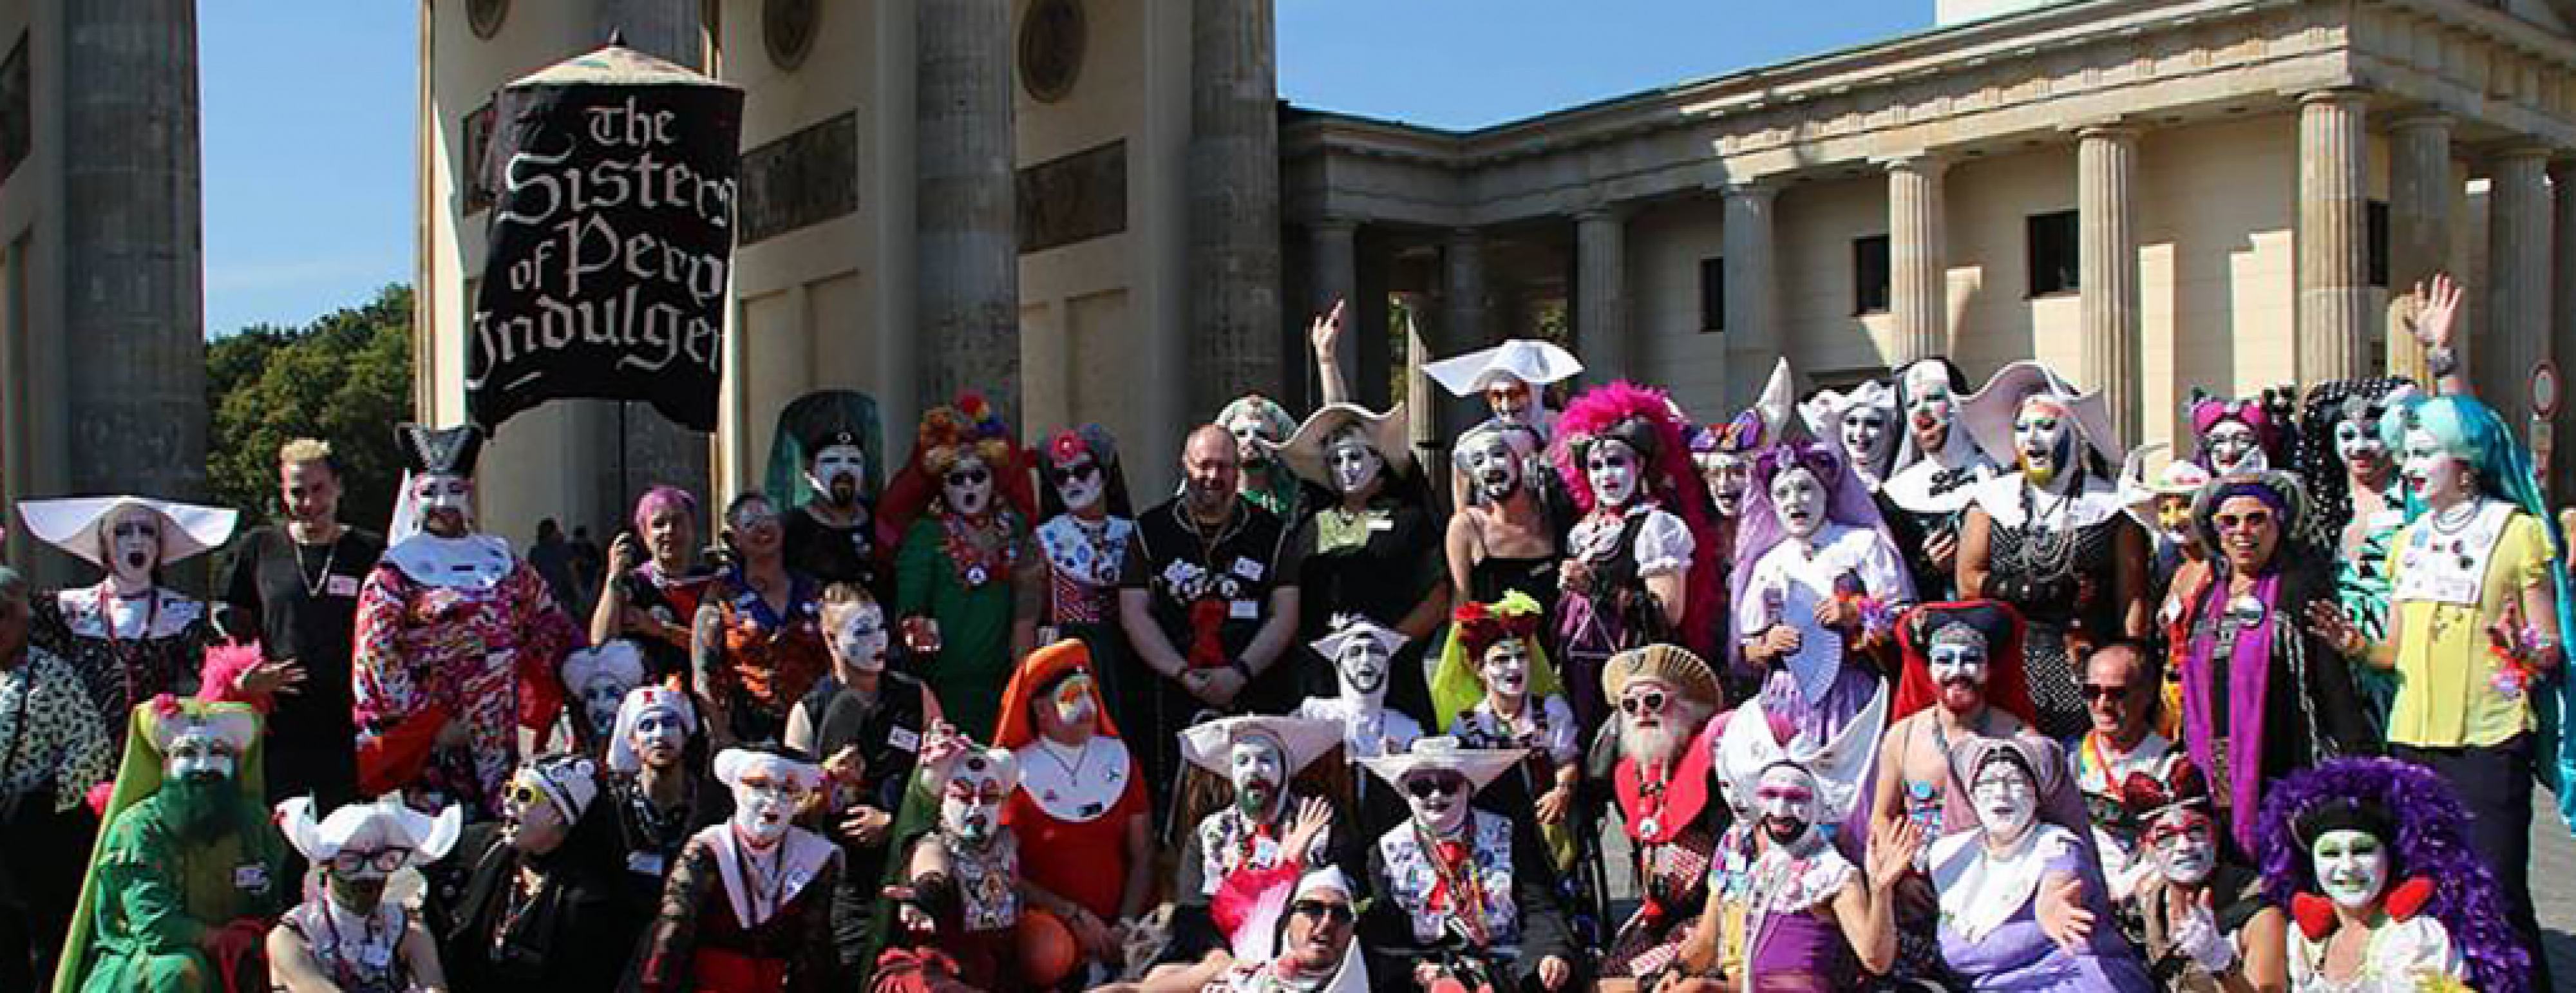 Gathering of The Sisters of Perpetual Indulgence